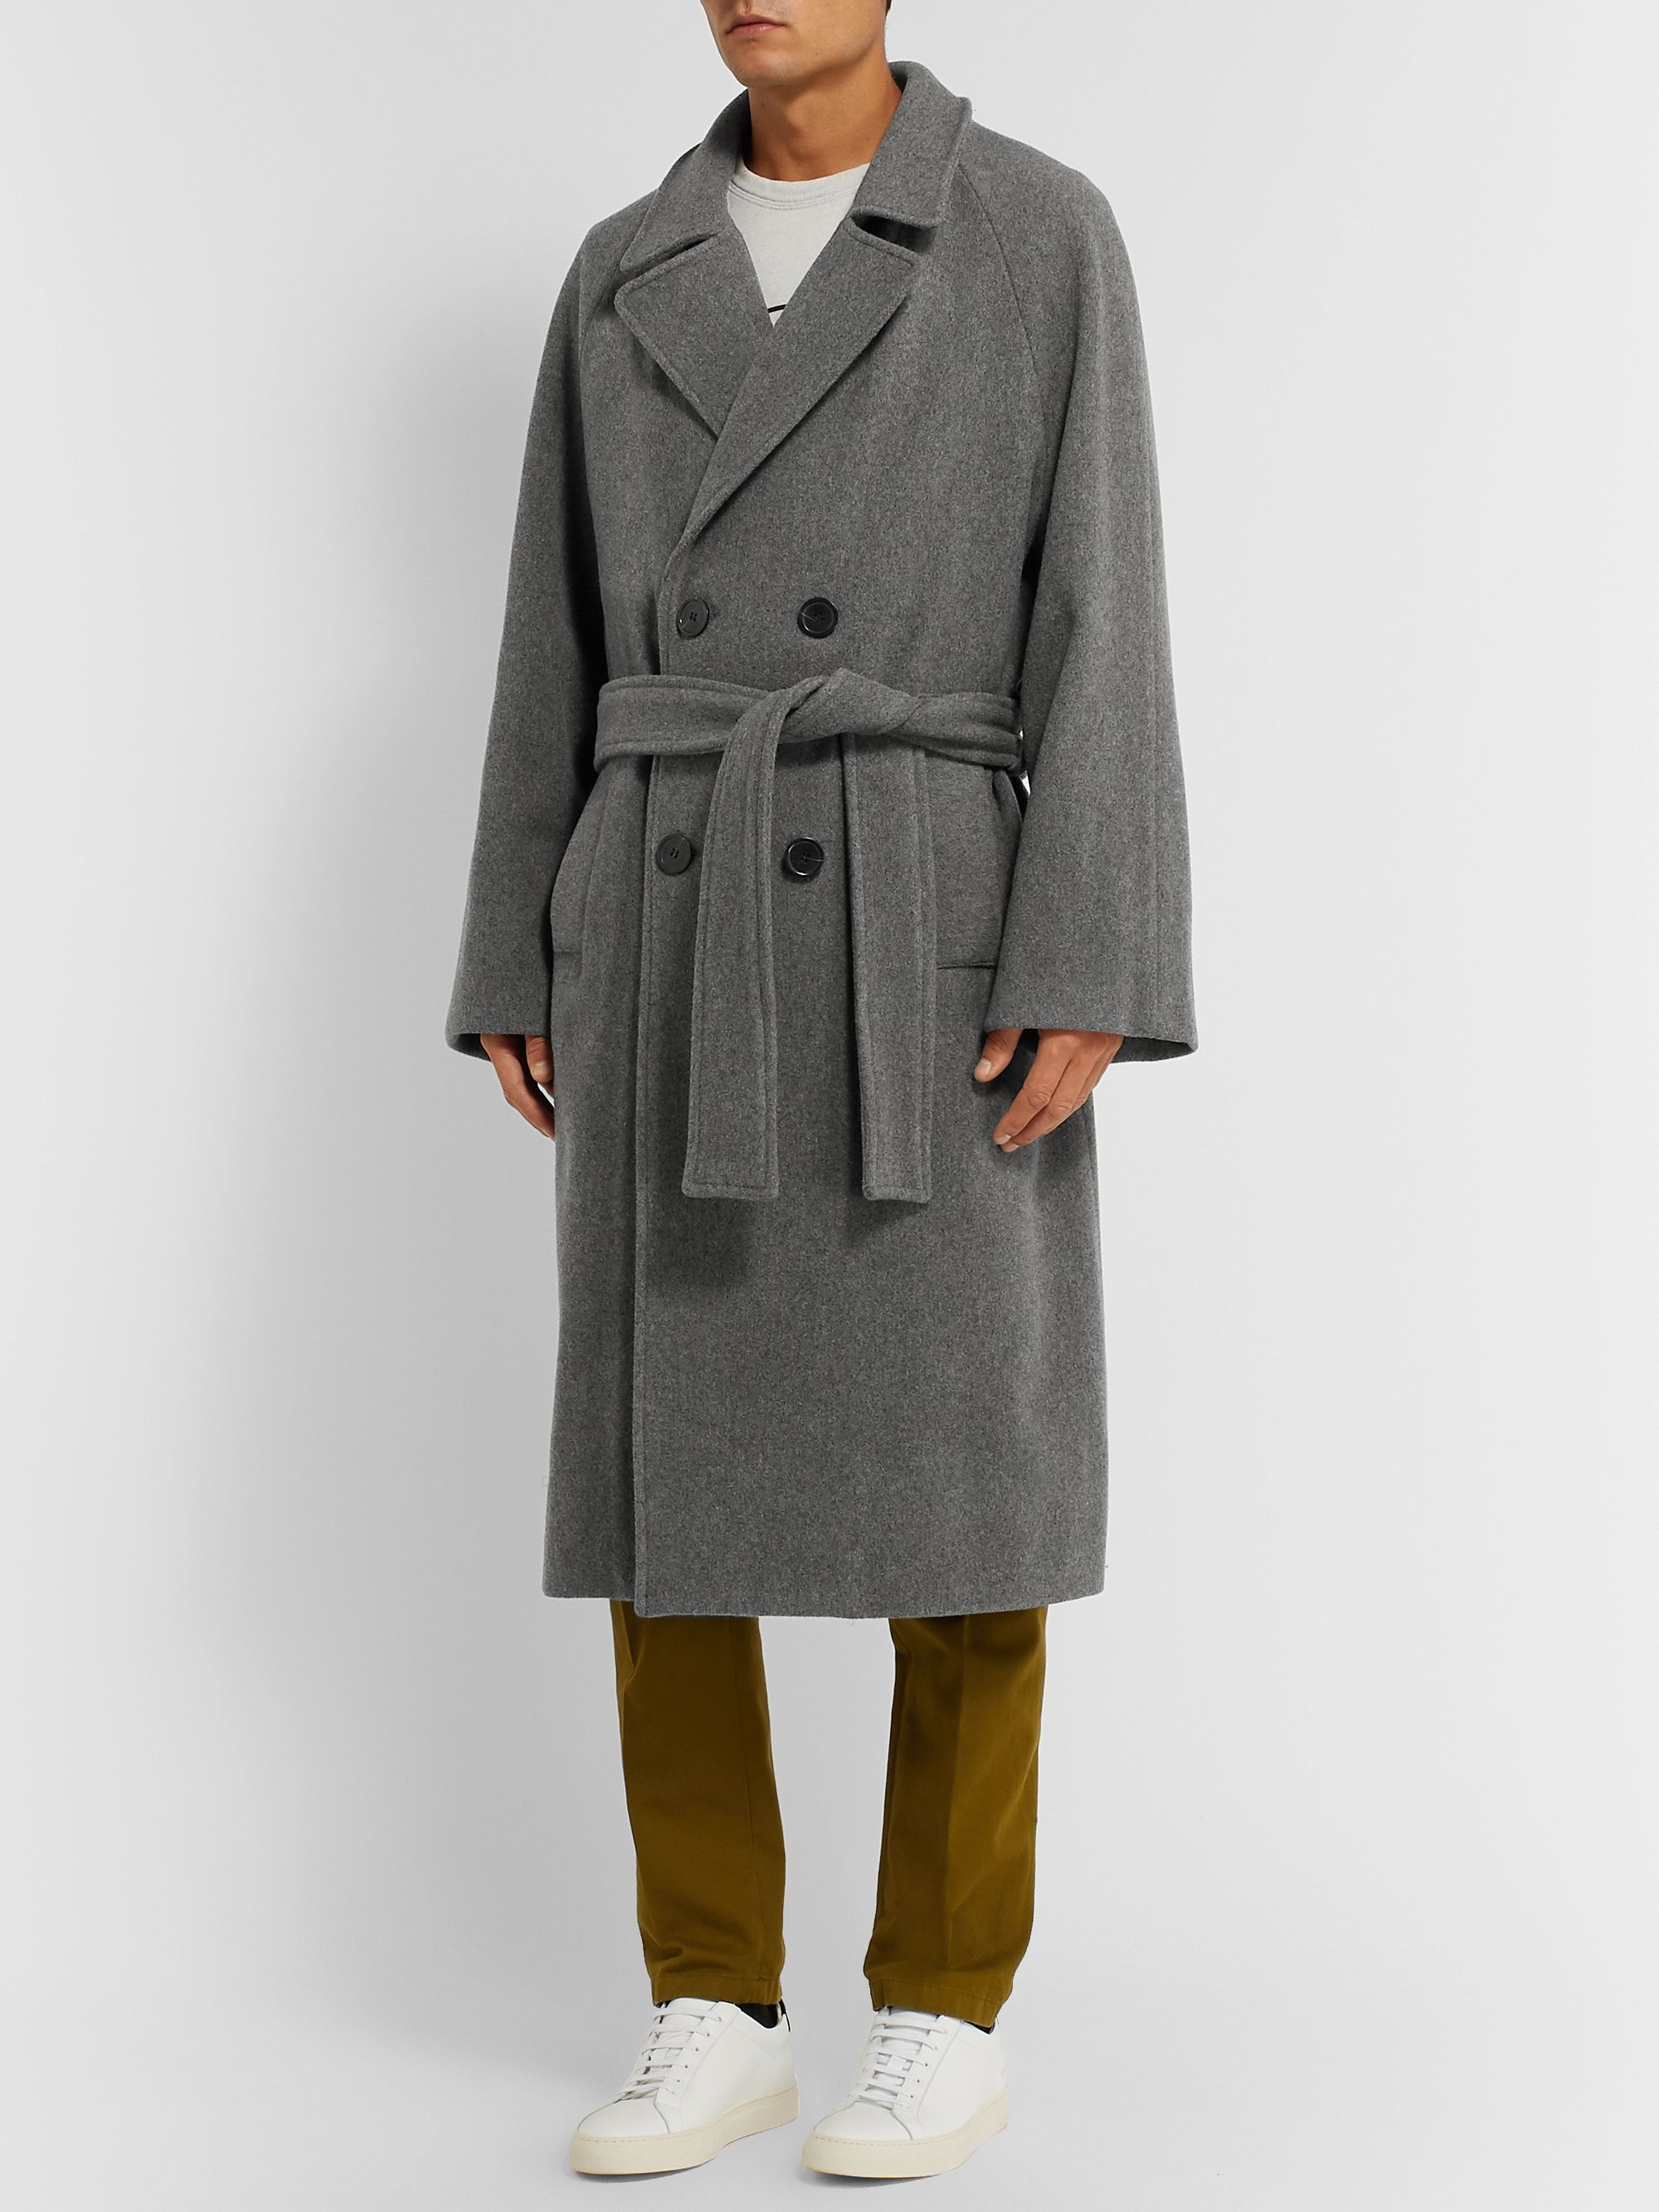 Maison Kitsuné Oversized Belted Double-Breasted Wool-Blend Coat